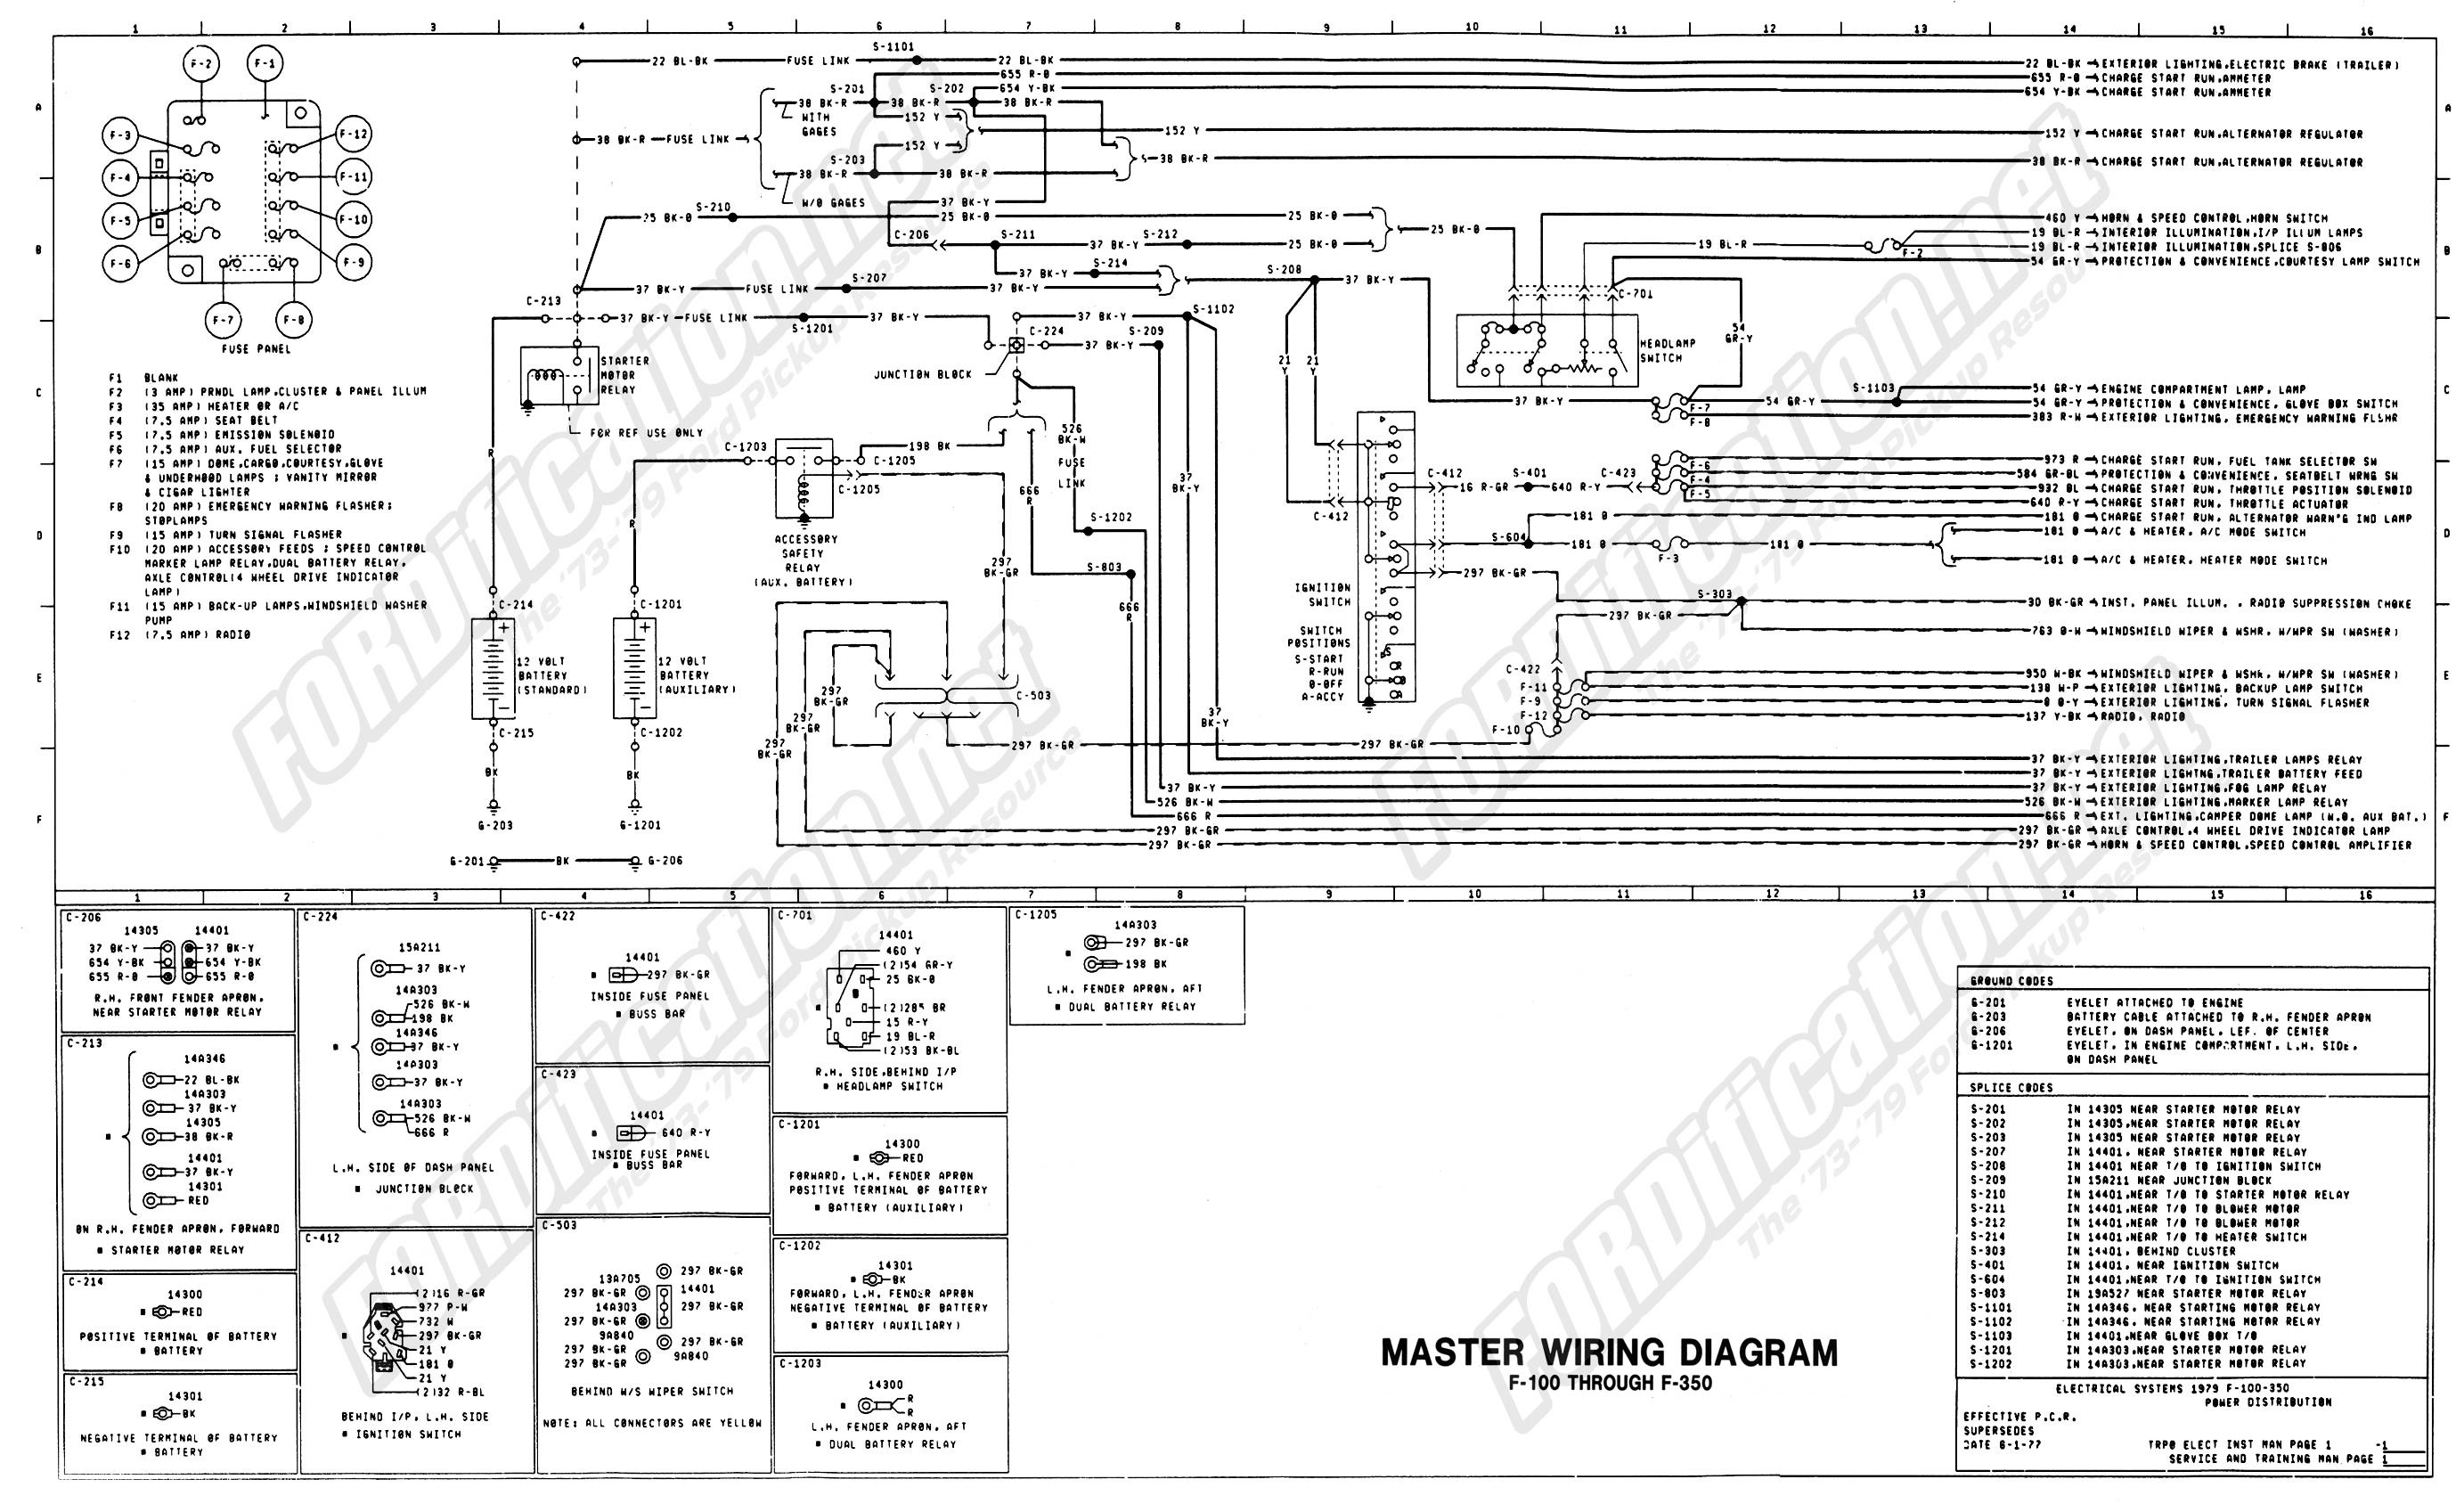 Tail Light Wiring Diagram for 2000 F350 1973 1979 ford Truck Wiring Diagrams & Schematics Of Tail Light Wiring Diagram for 2000 F350